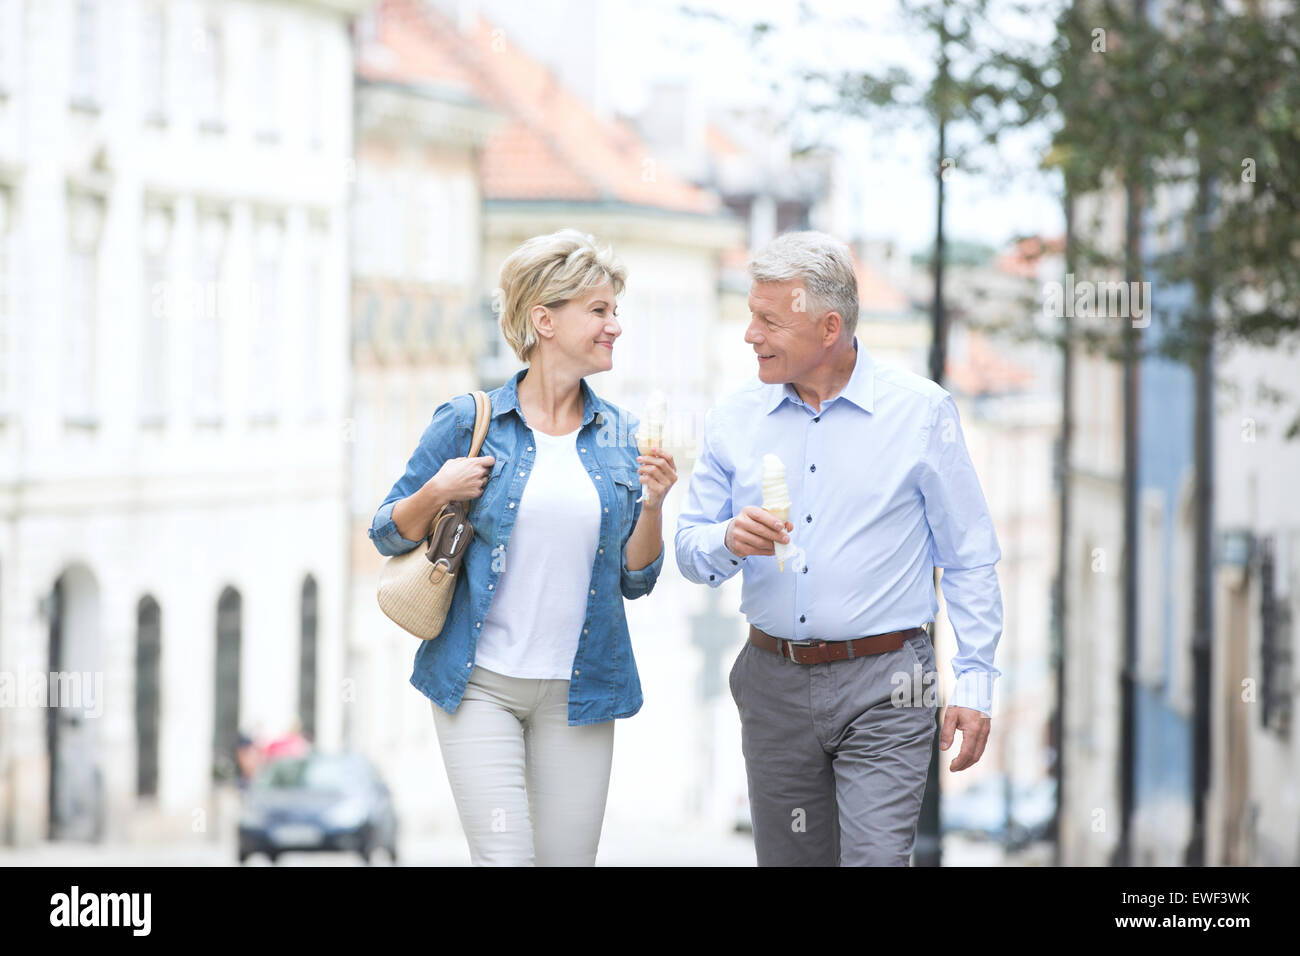 Happy middle-aged couple looking at each other while holding ice cream cones in city - Stock Image